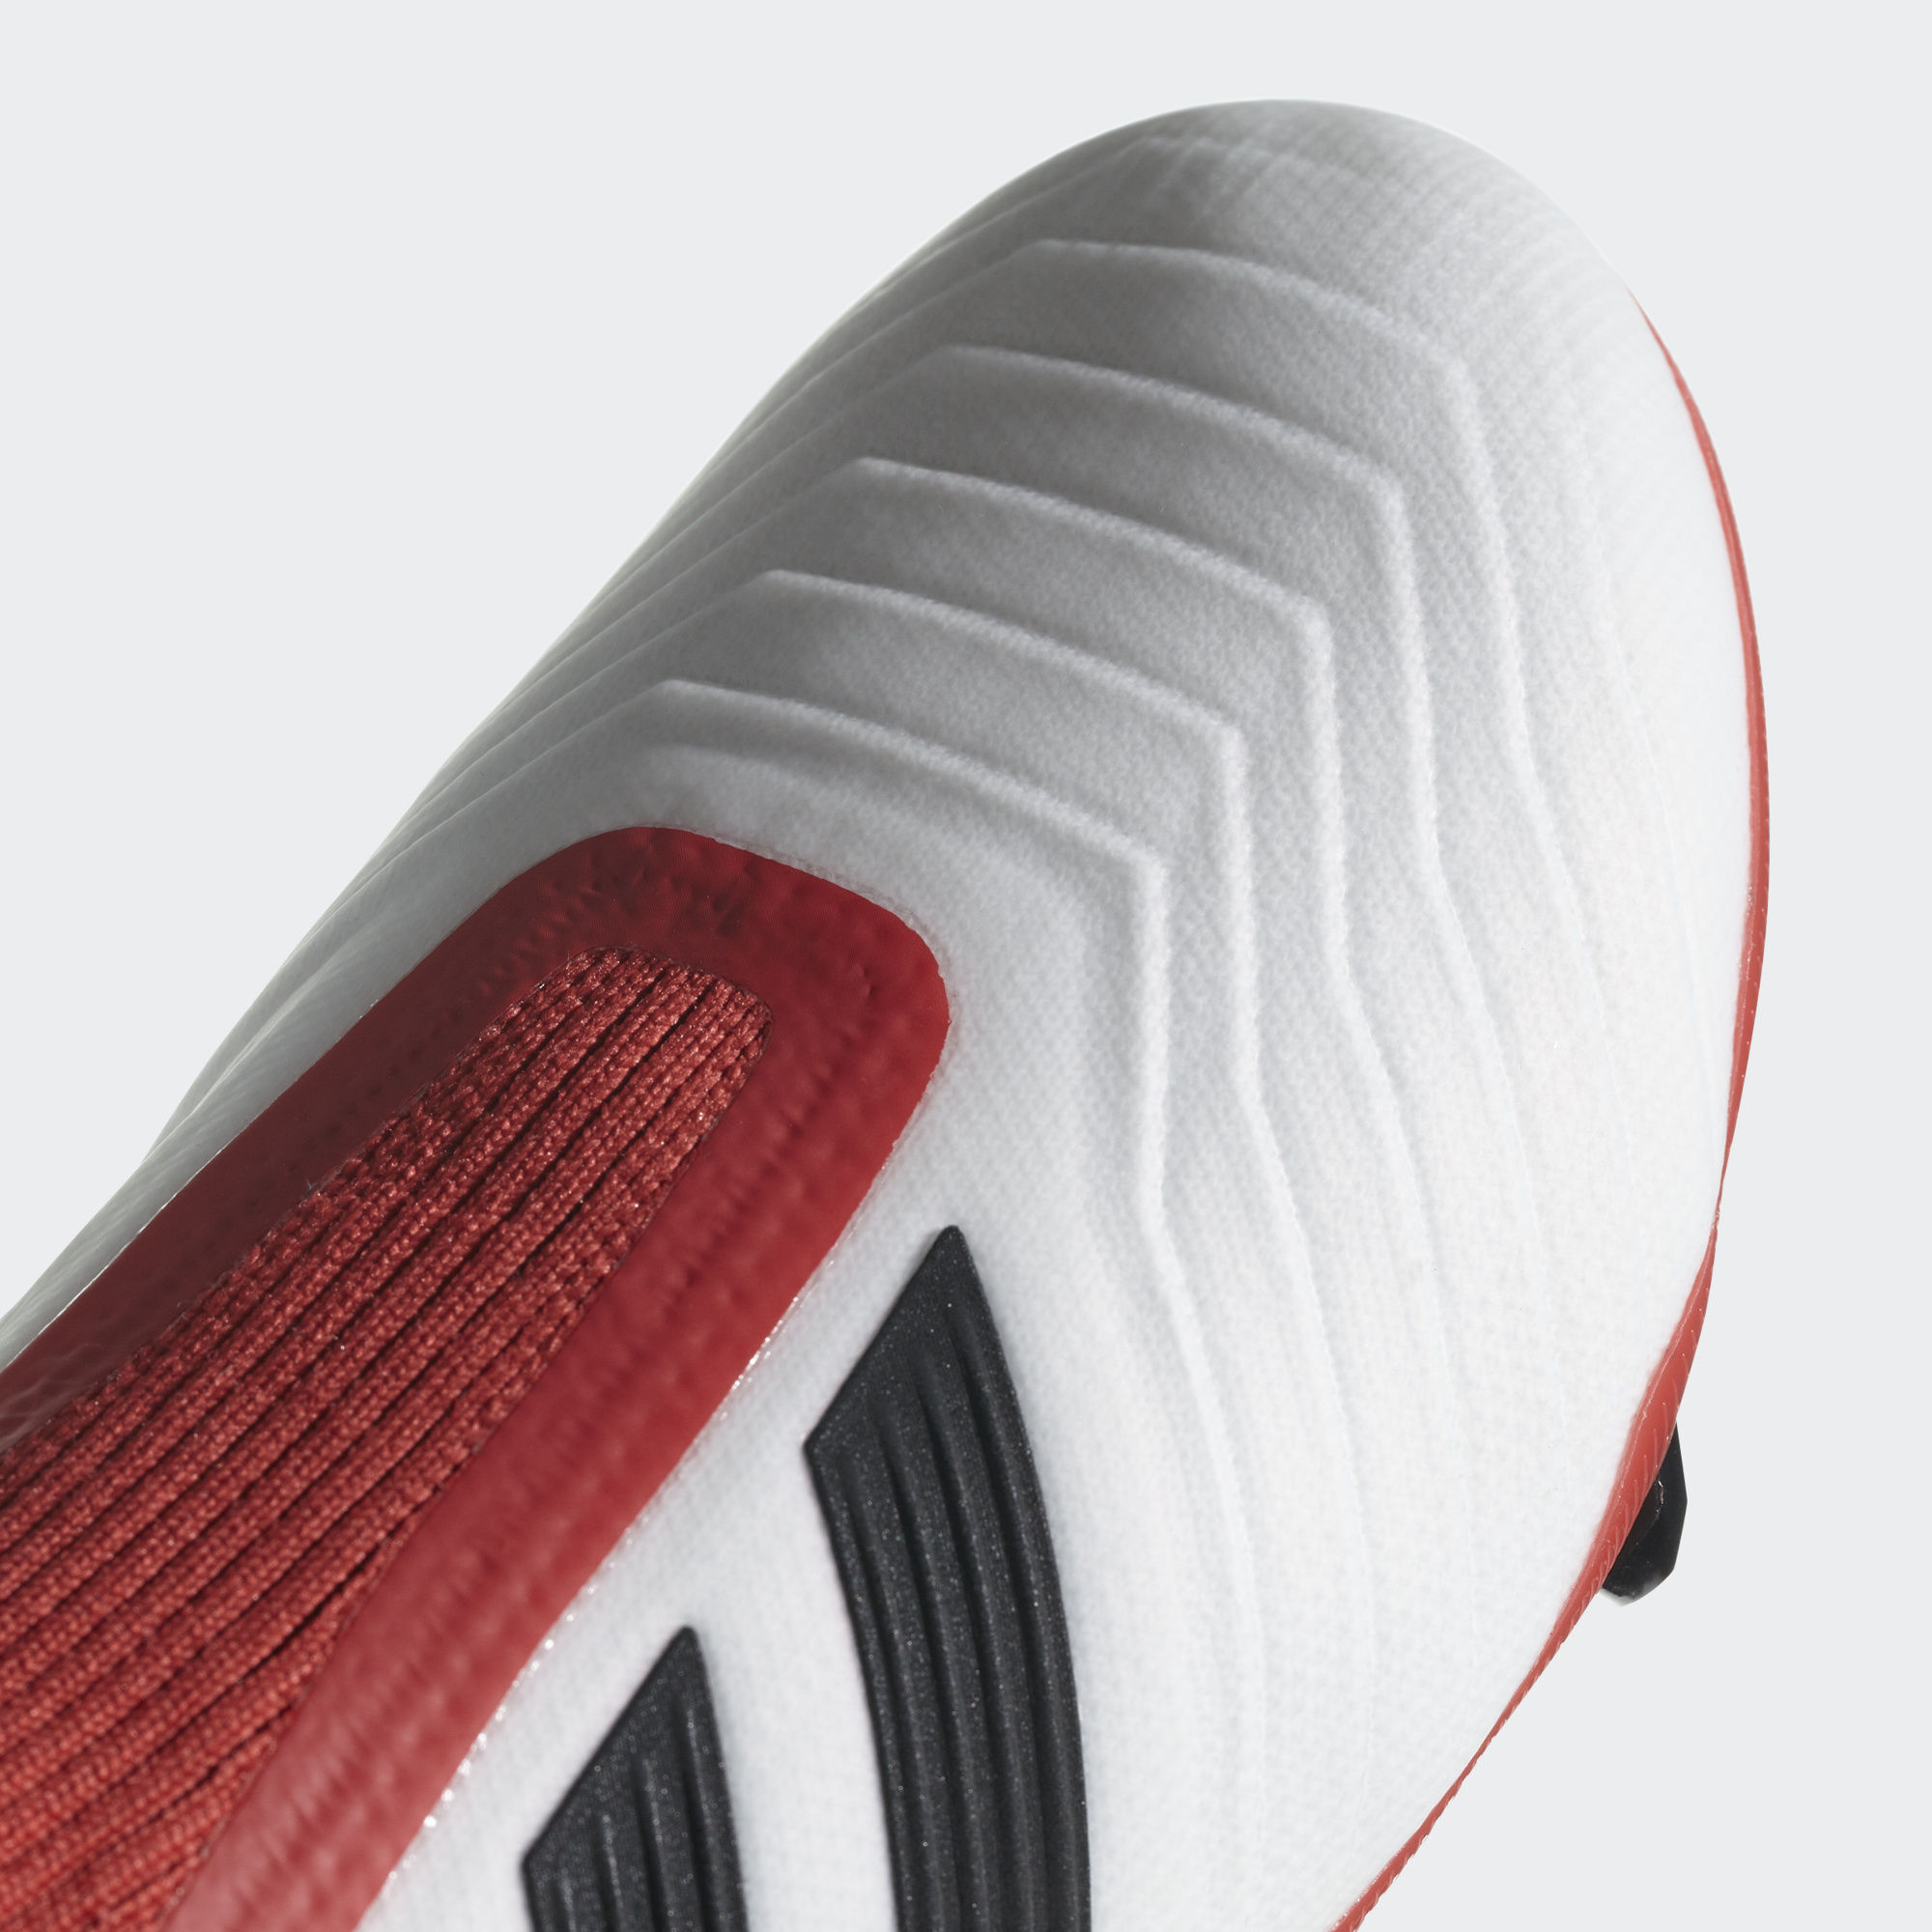 187beb20750c ... Click to enlarge image  adidas_predator_18_fg_cold_blooded_ftwr_white_core_black_real_coral_h.jpg  ...